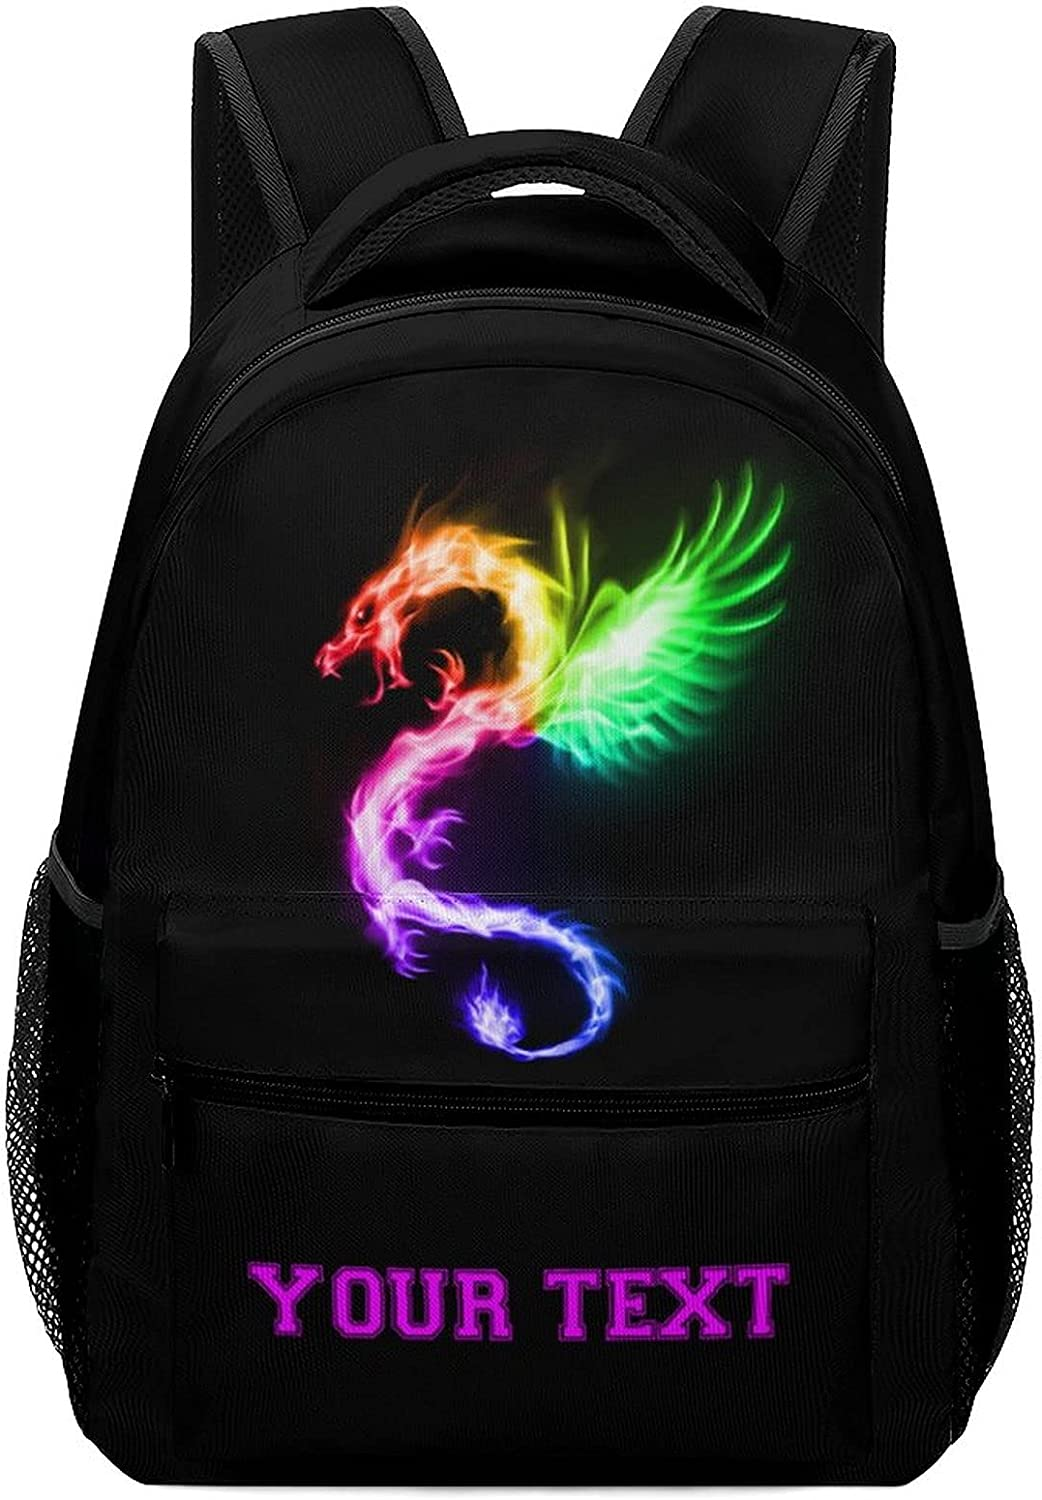 Custom Backpack for Boys Personalized with Be super welcome Girls Excellent Name